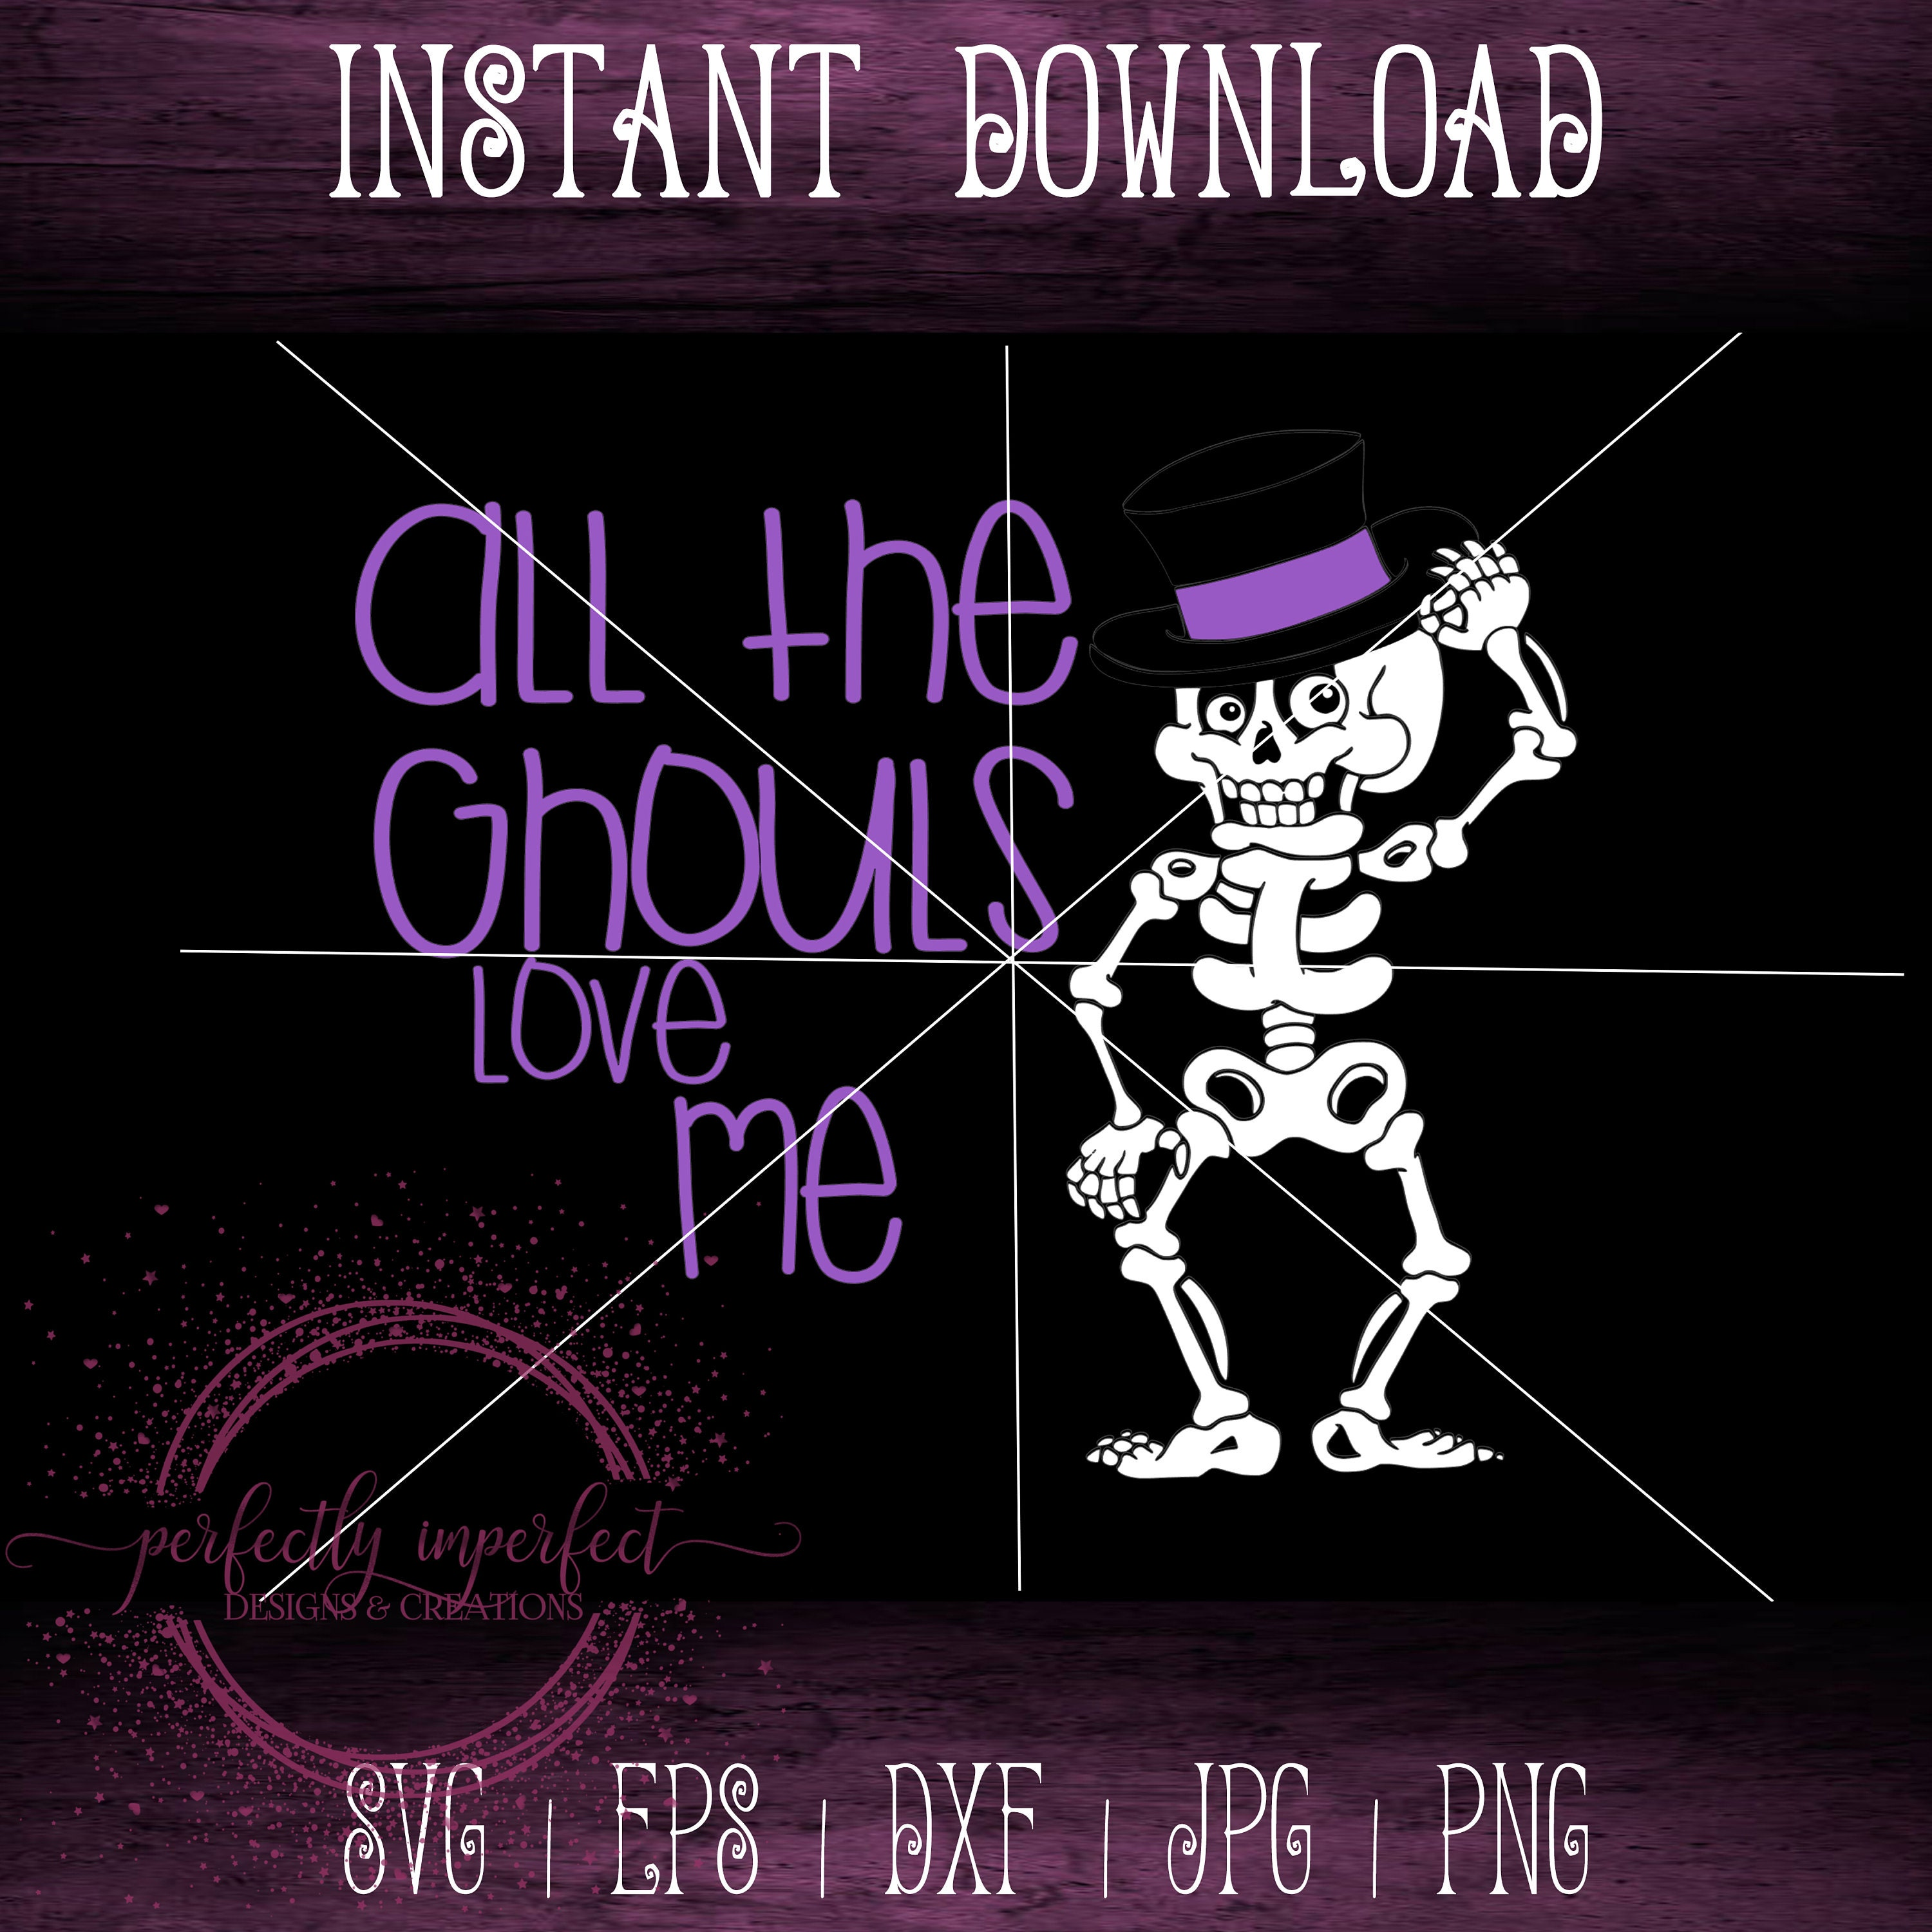 Download All The Ghouls Love Me Svg - Layered SVG Cut File ...